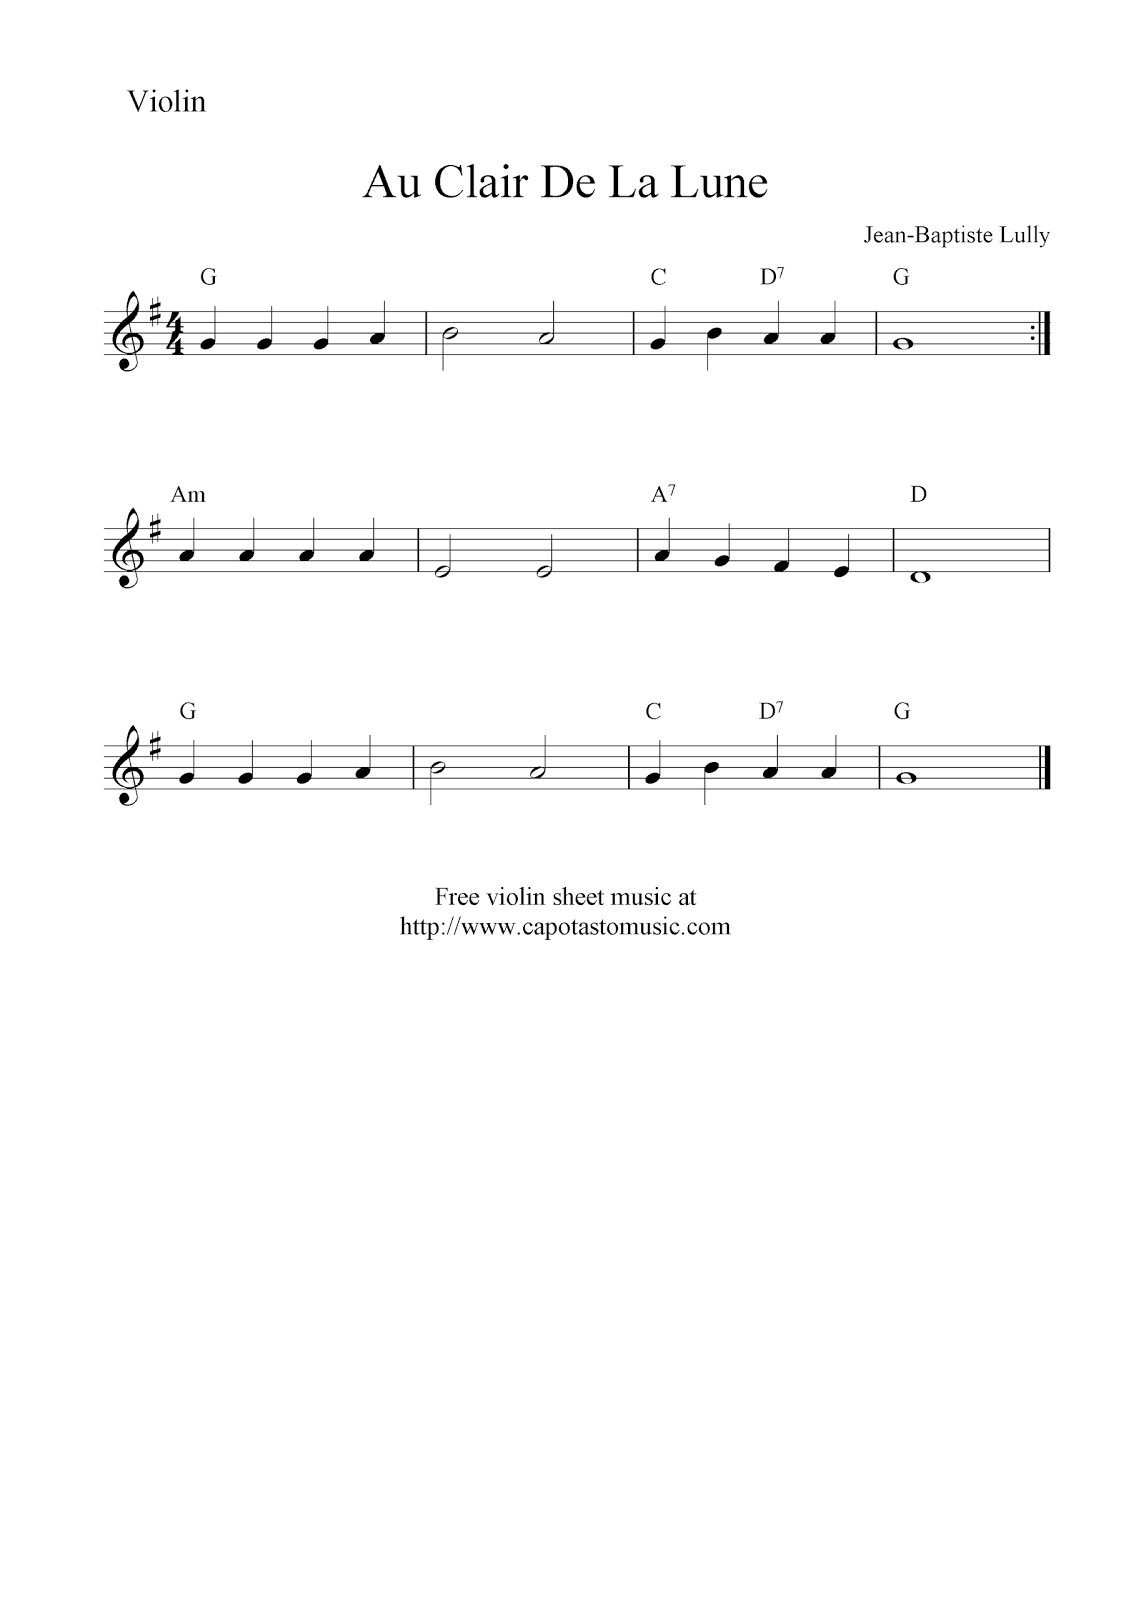 Au Clair De La Lune, Free Violin Sheet Music Notes - Free Printable Australian Notes